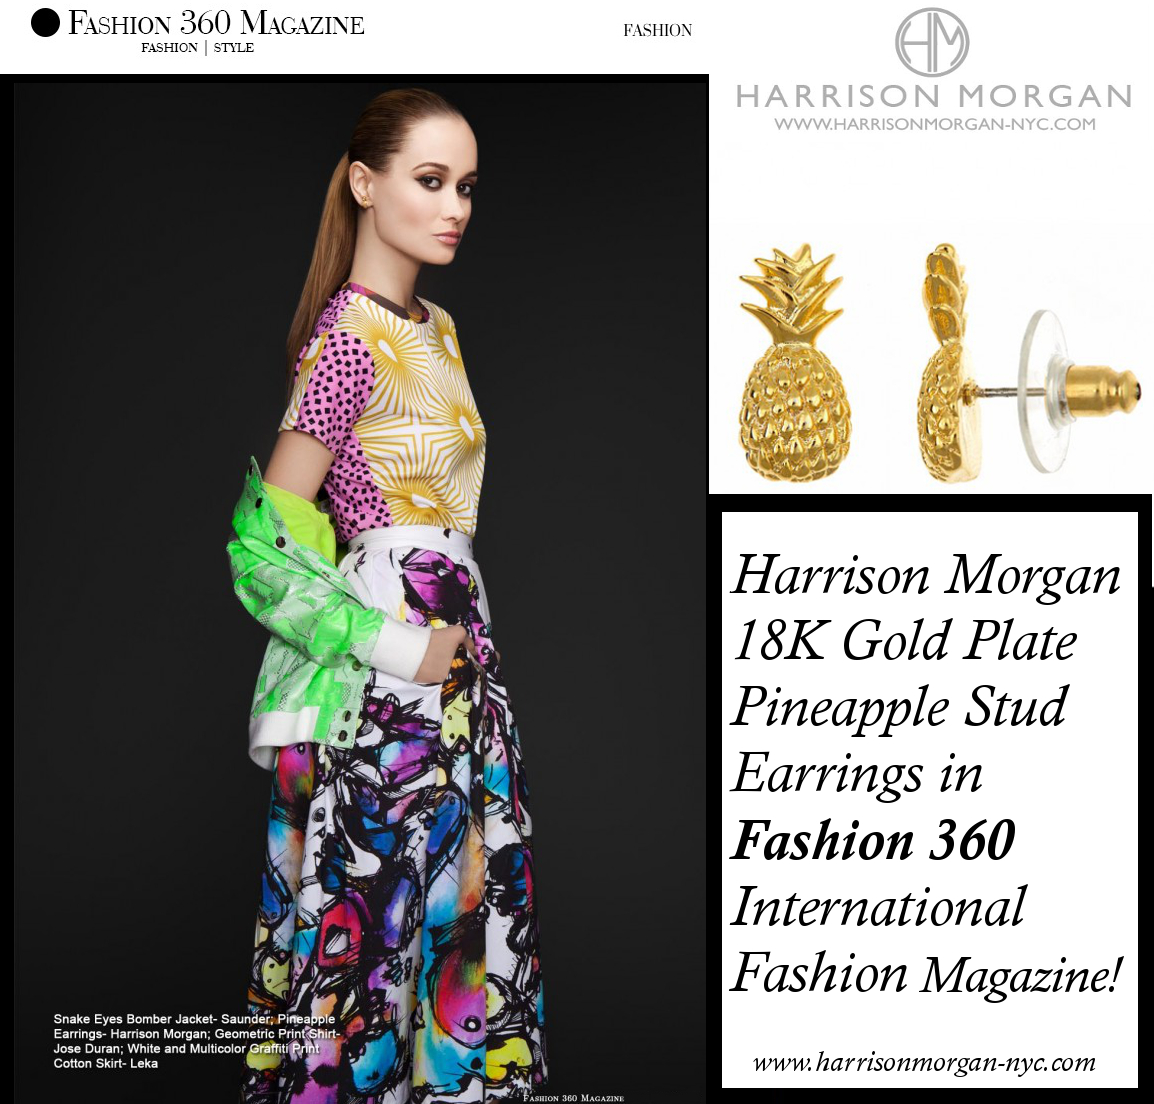 HMNYC Pineapple Fashion360